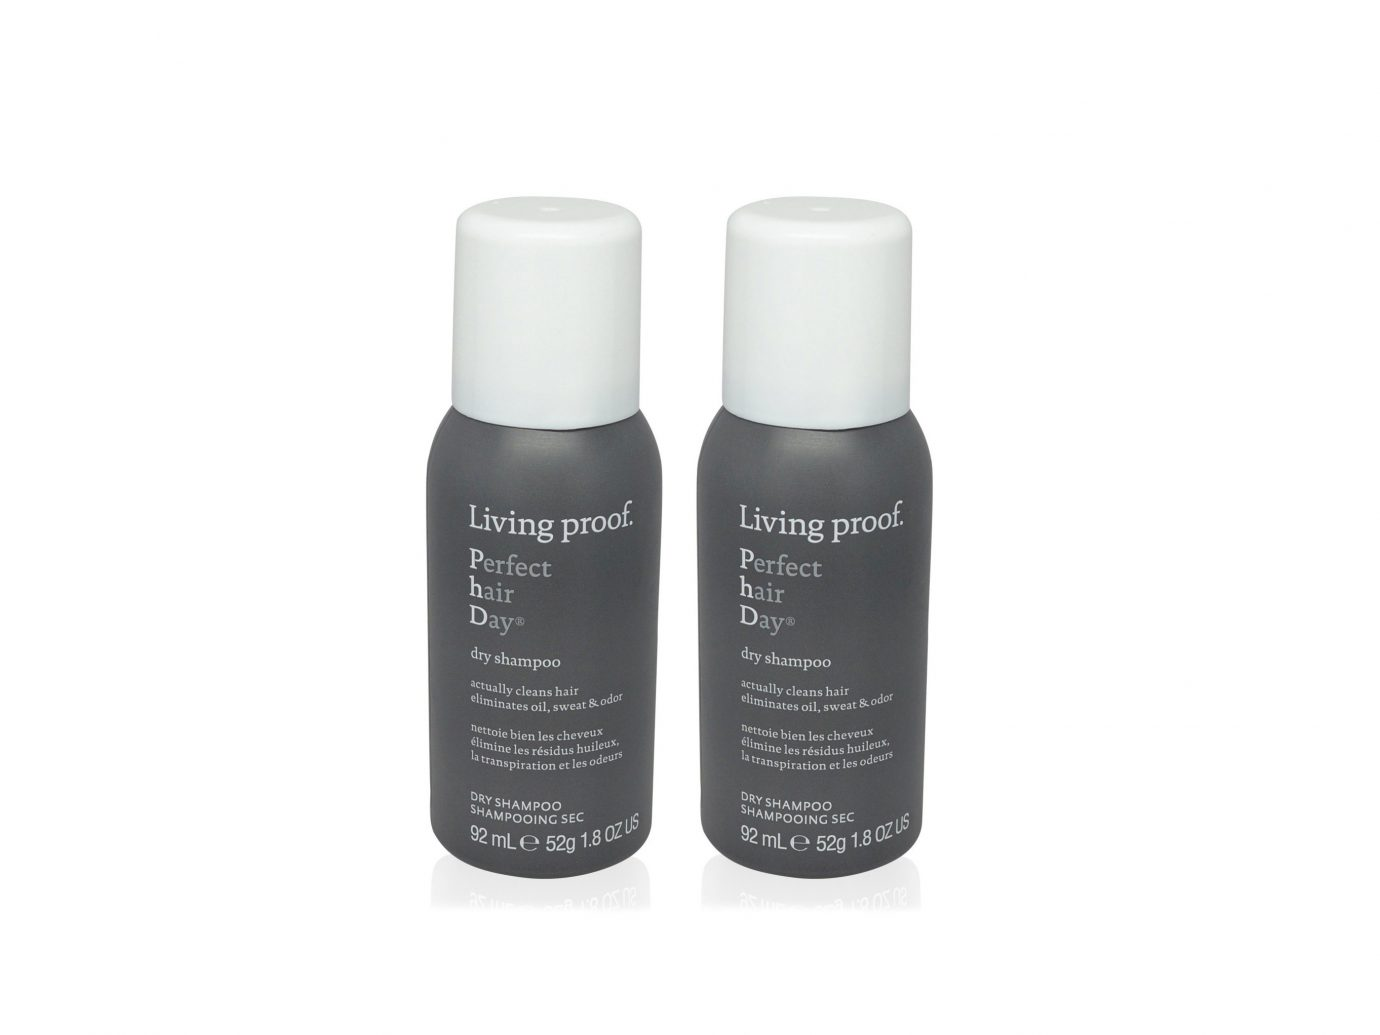 Living Proof Perfect Hair Day Travel Size Dry Shampoo